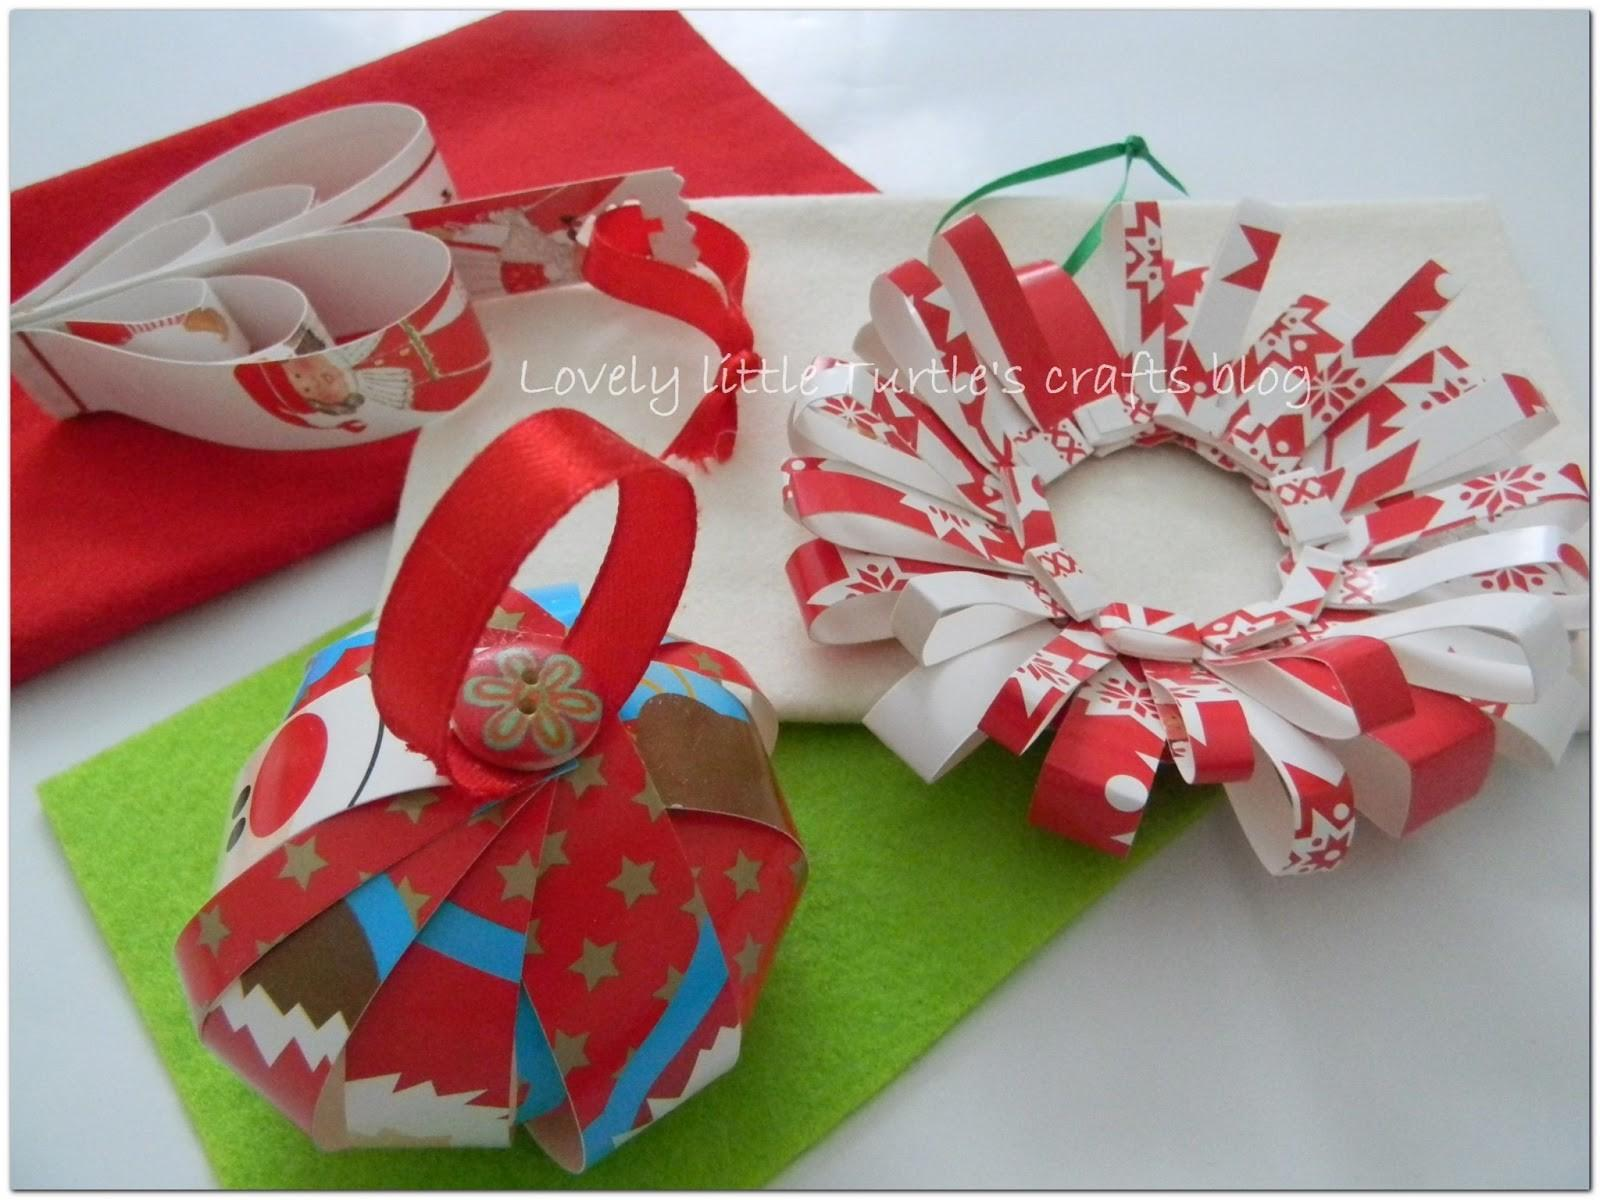 Lovely Little Turtle Crafts Blog Recycle Your Old